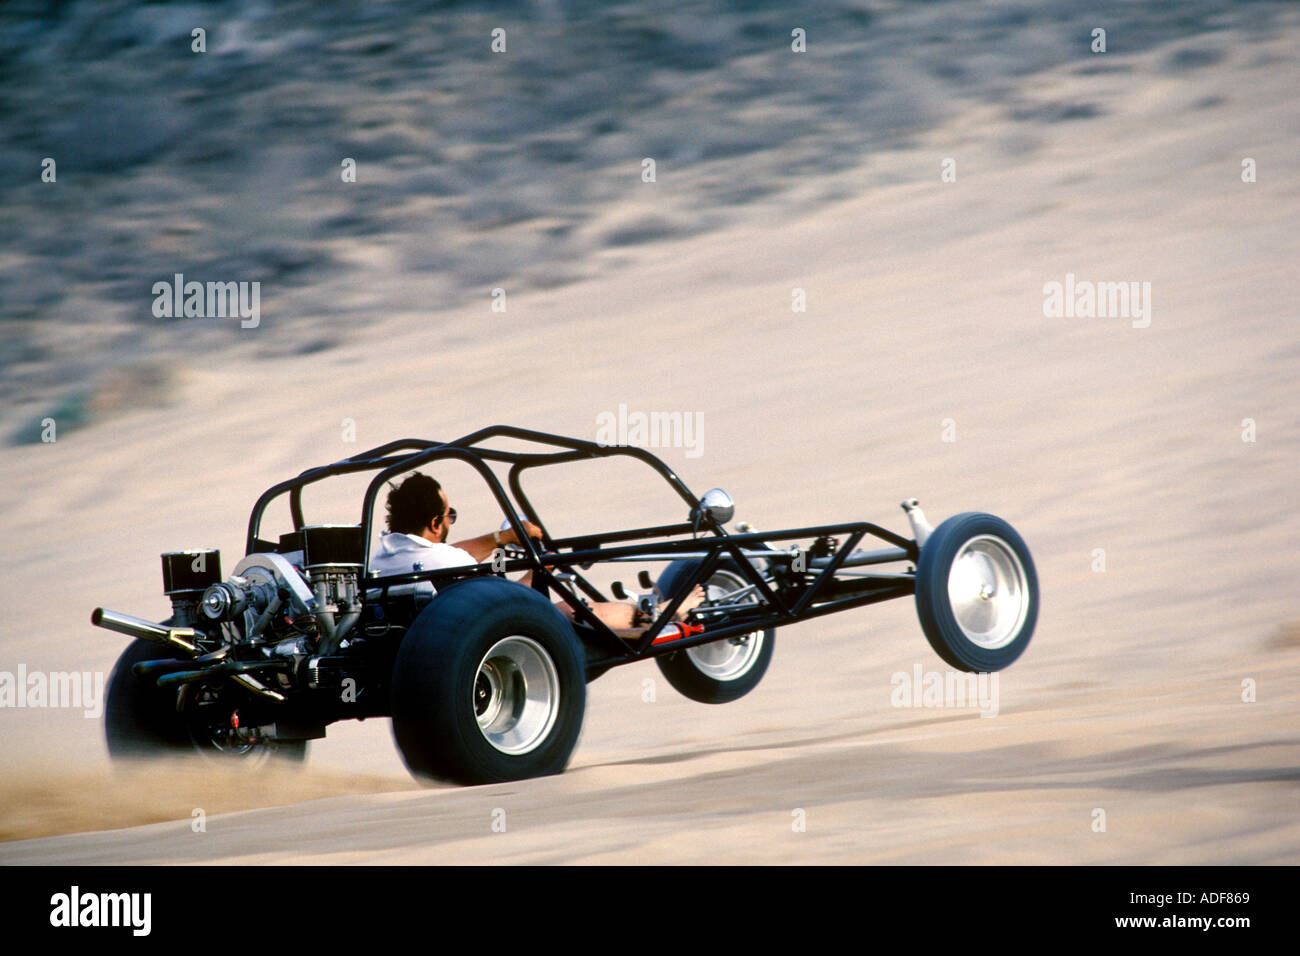 One seater dune buggy - Oquirrh mountain